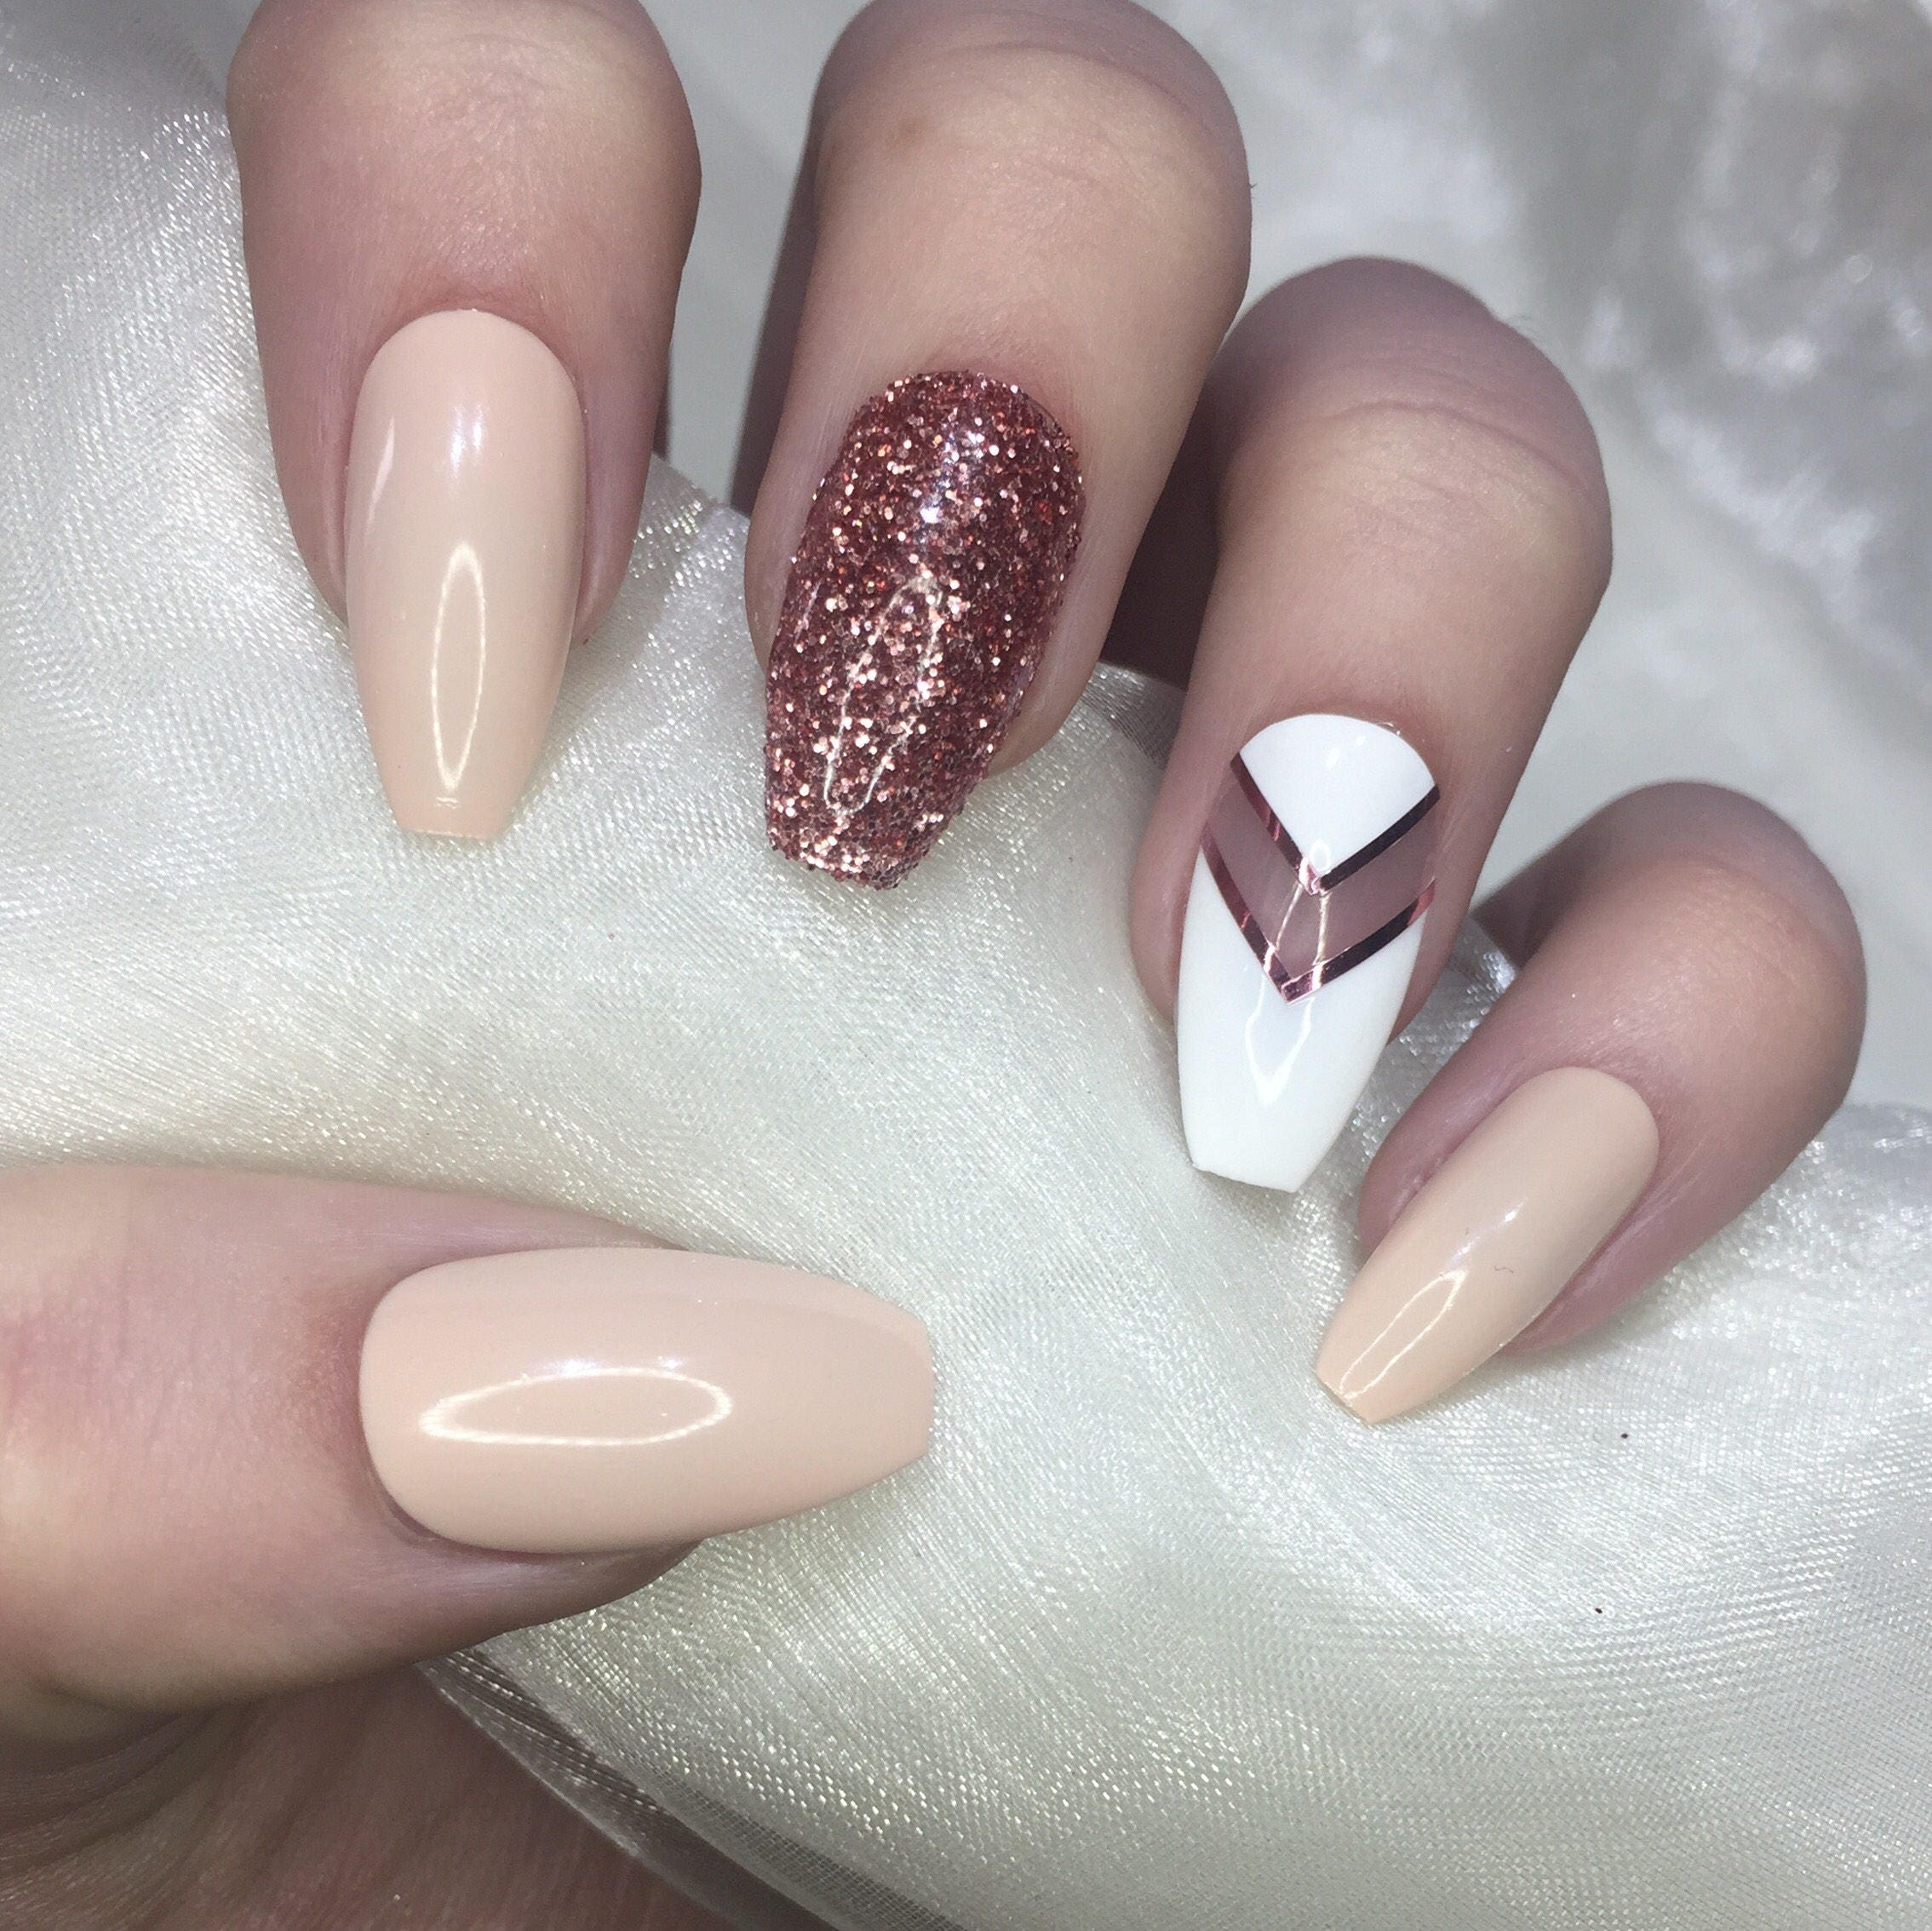 Nude and rose gold glitter coffin nails from nailartbygeorgia on ...